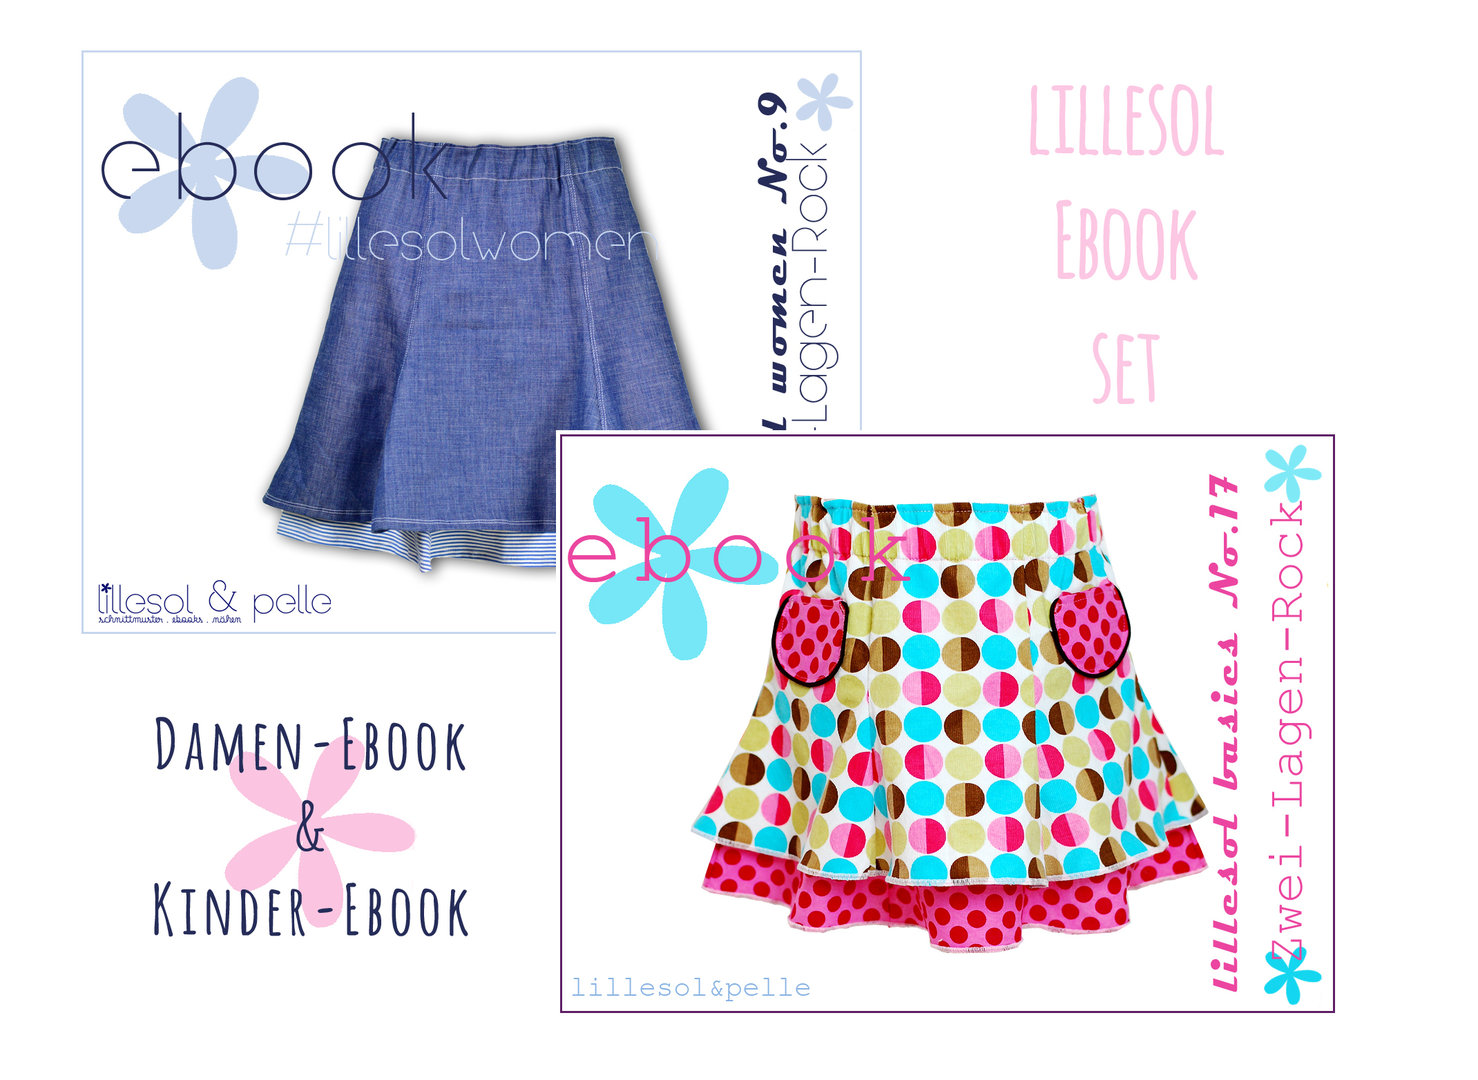 lillesol ebook set basic No.17 und women No.9